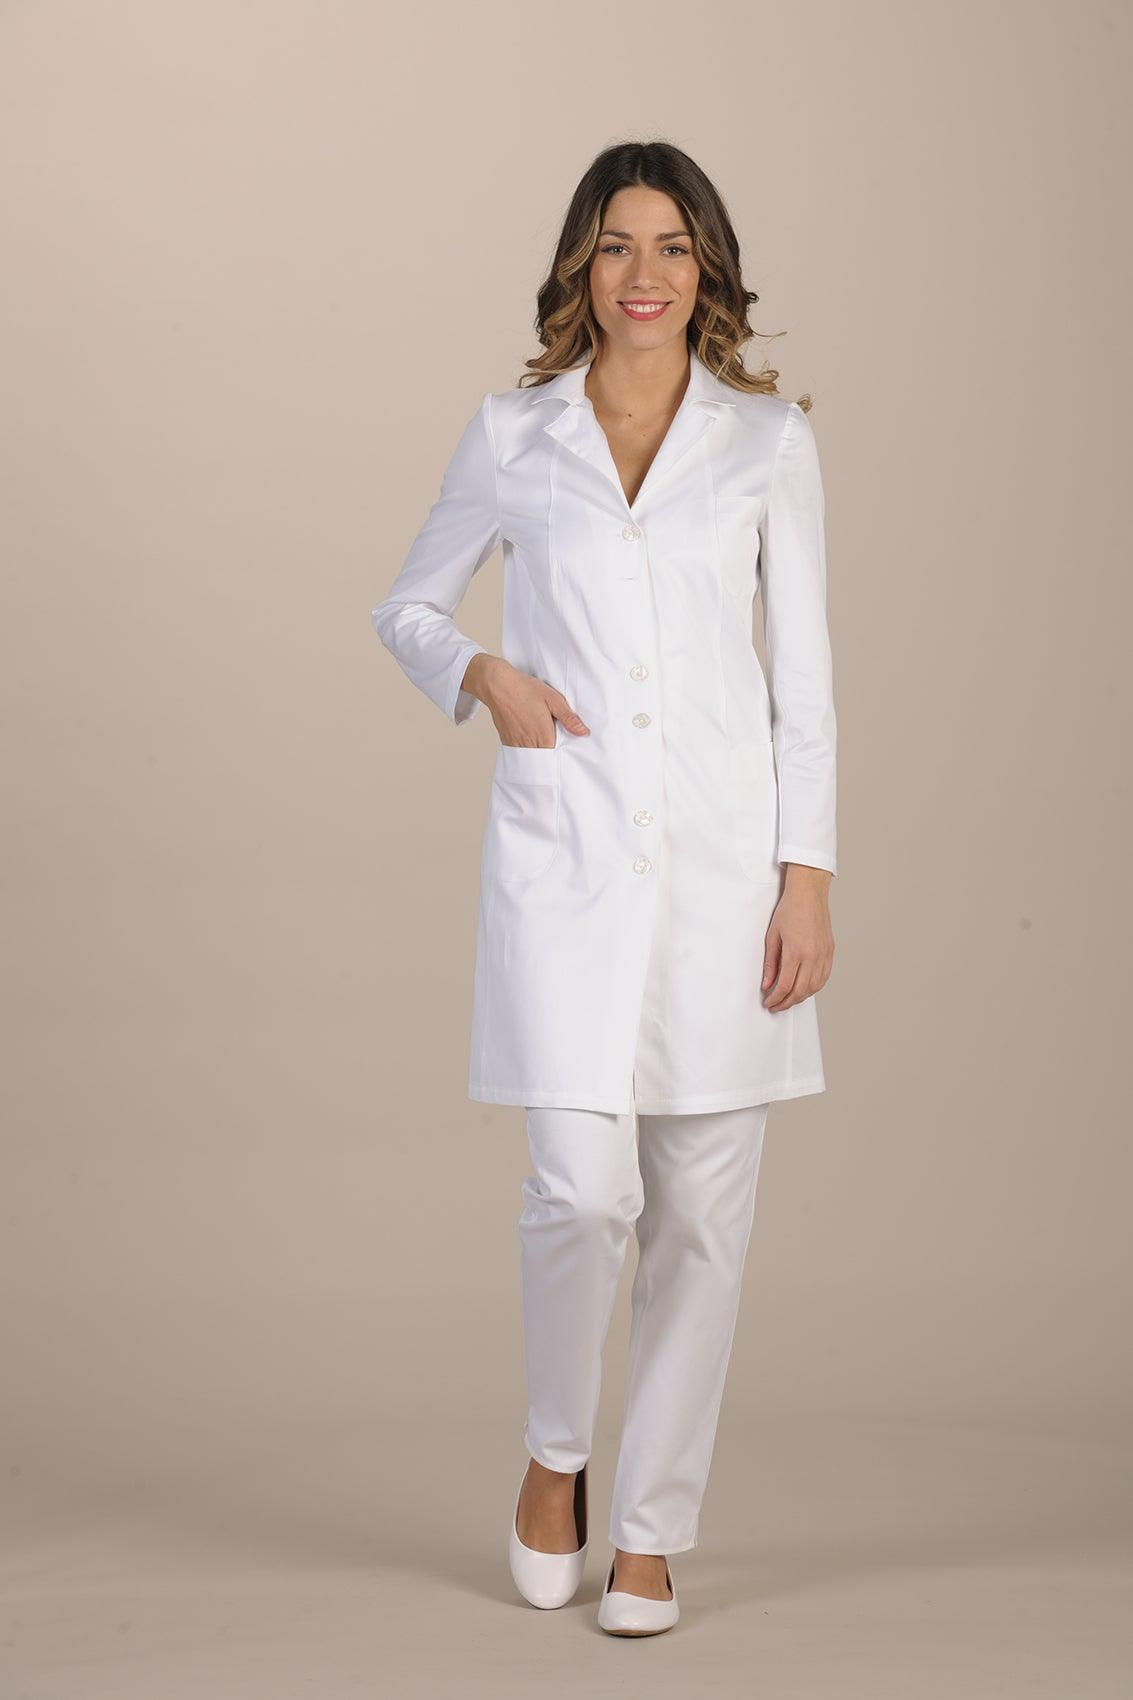 Erevan Women's Lab Coat - PET easy care